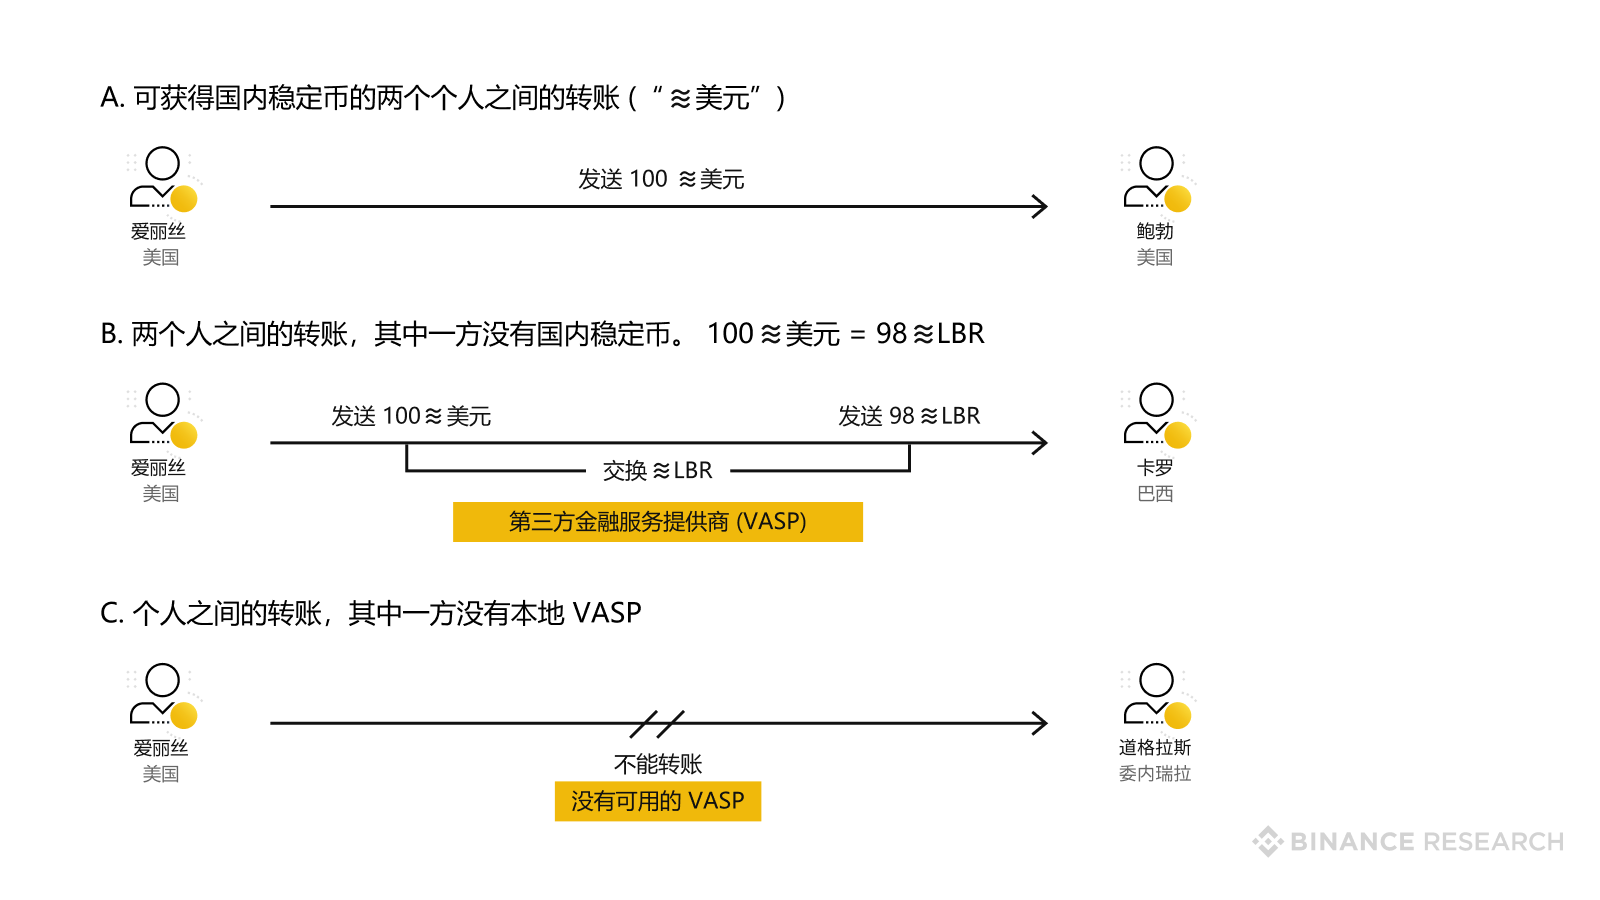 Conceptualized overview of transaction types in Libra